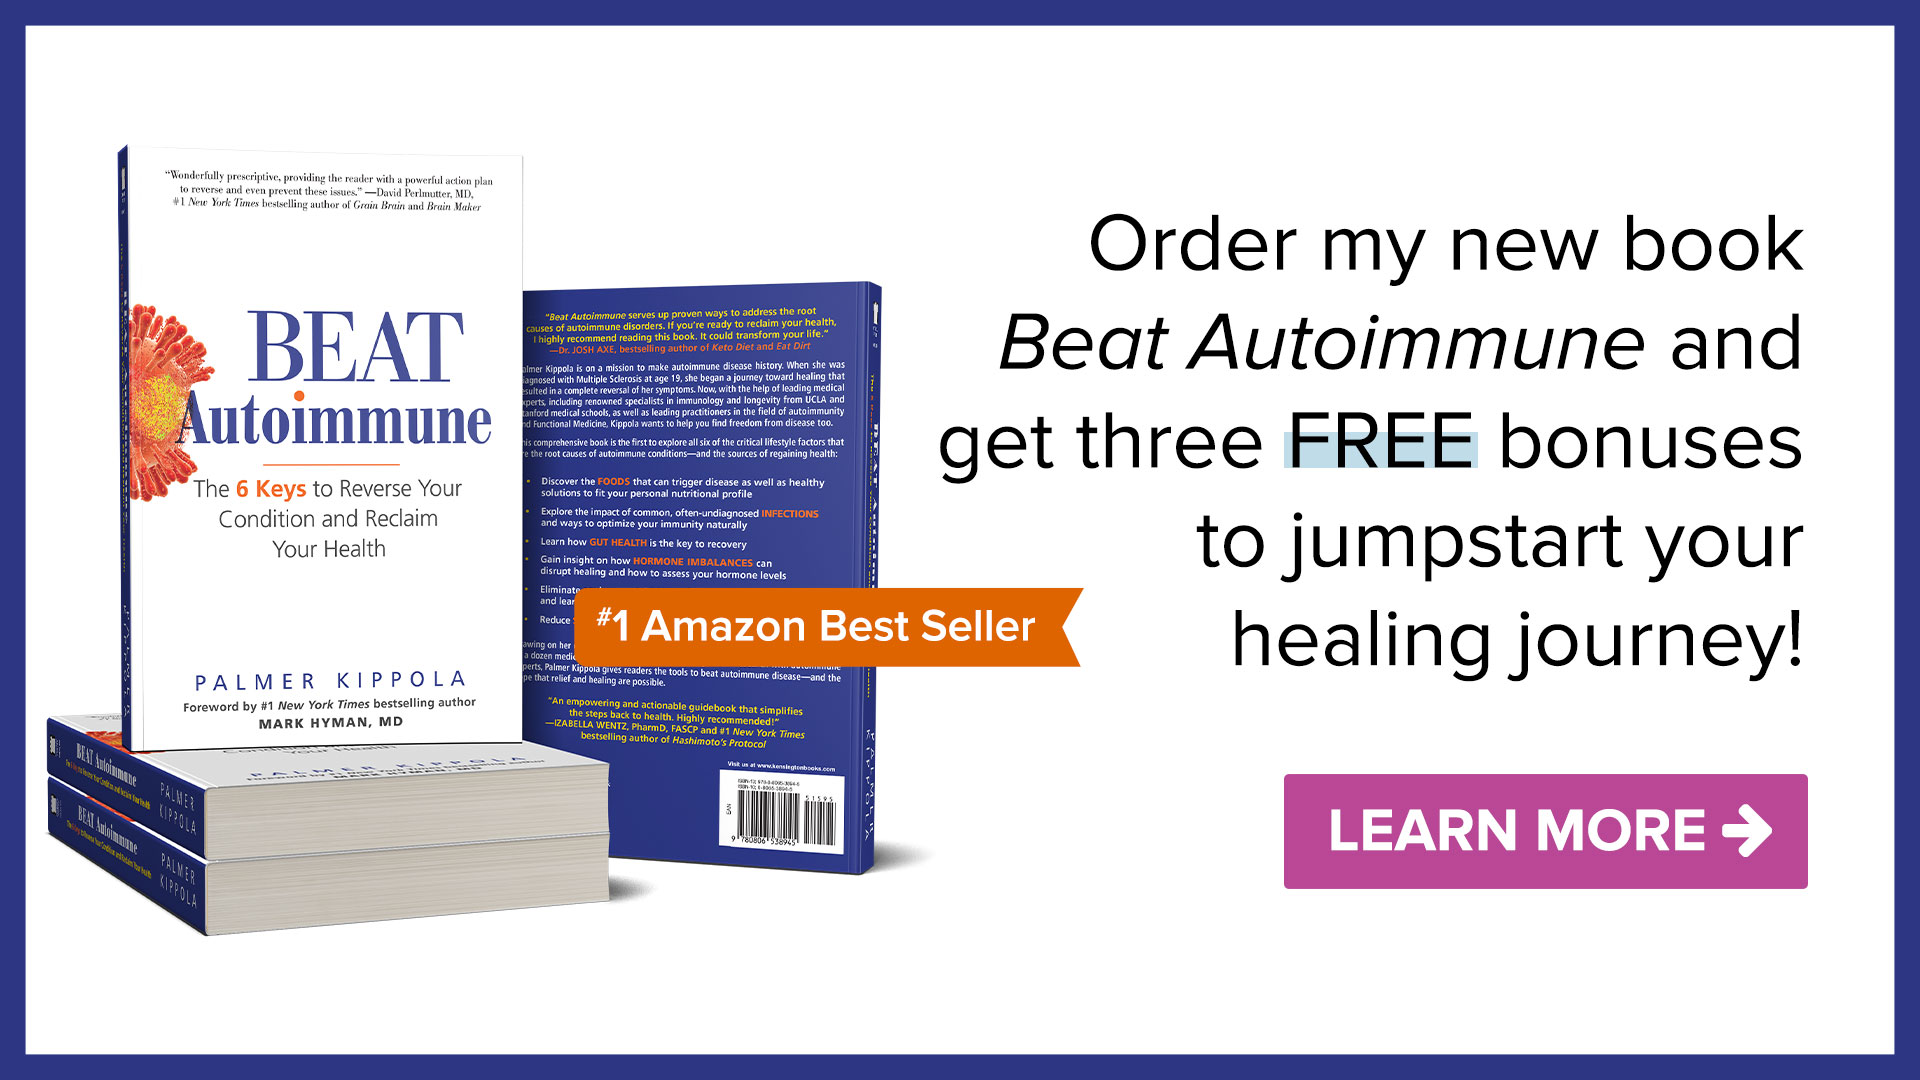 Beat Autoimmune Amazon Best Seller